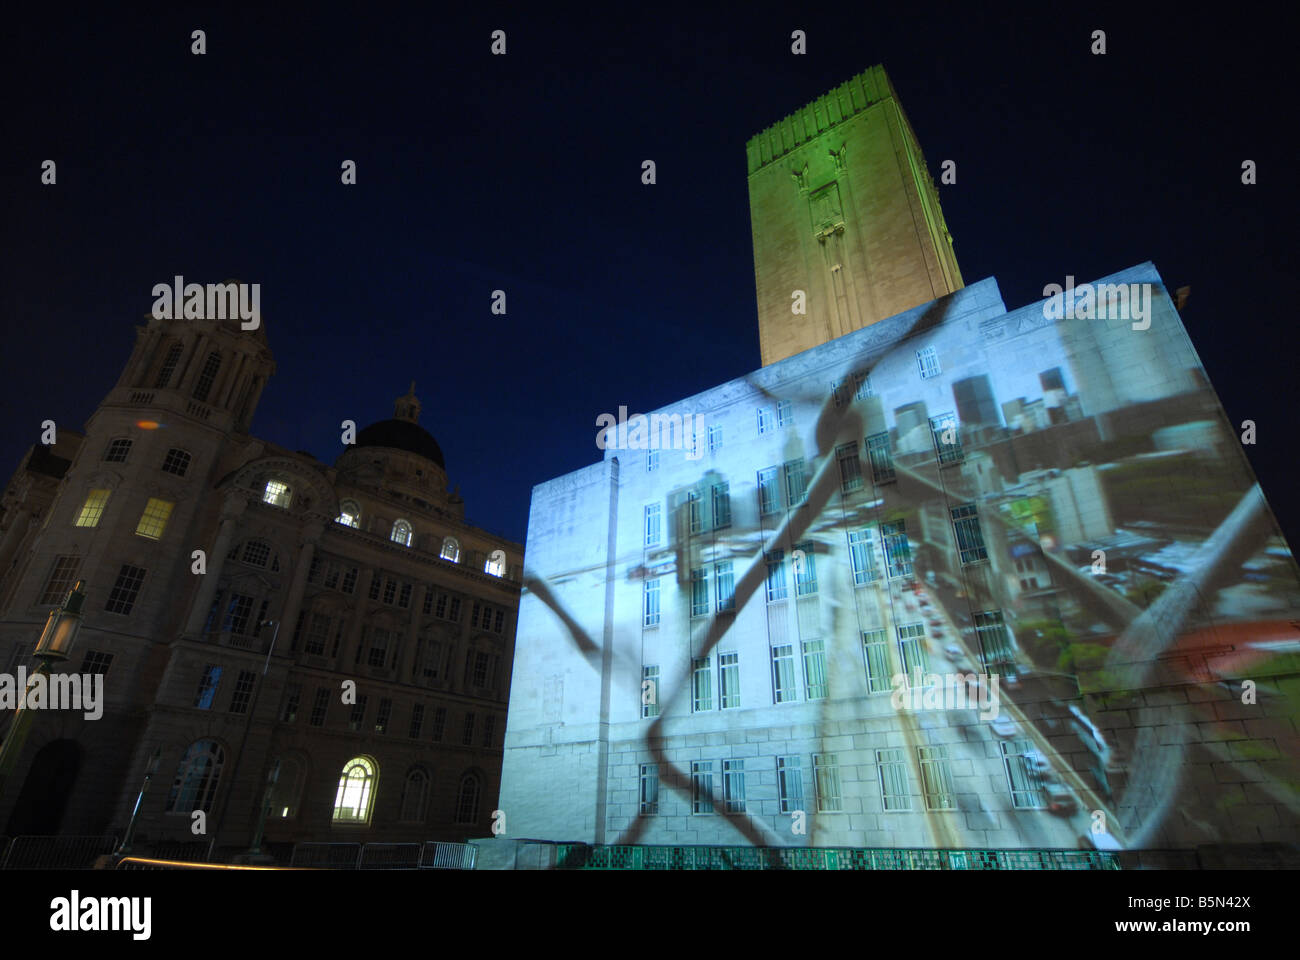 liverpool european capital of culture 2008 uk stock photos